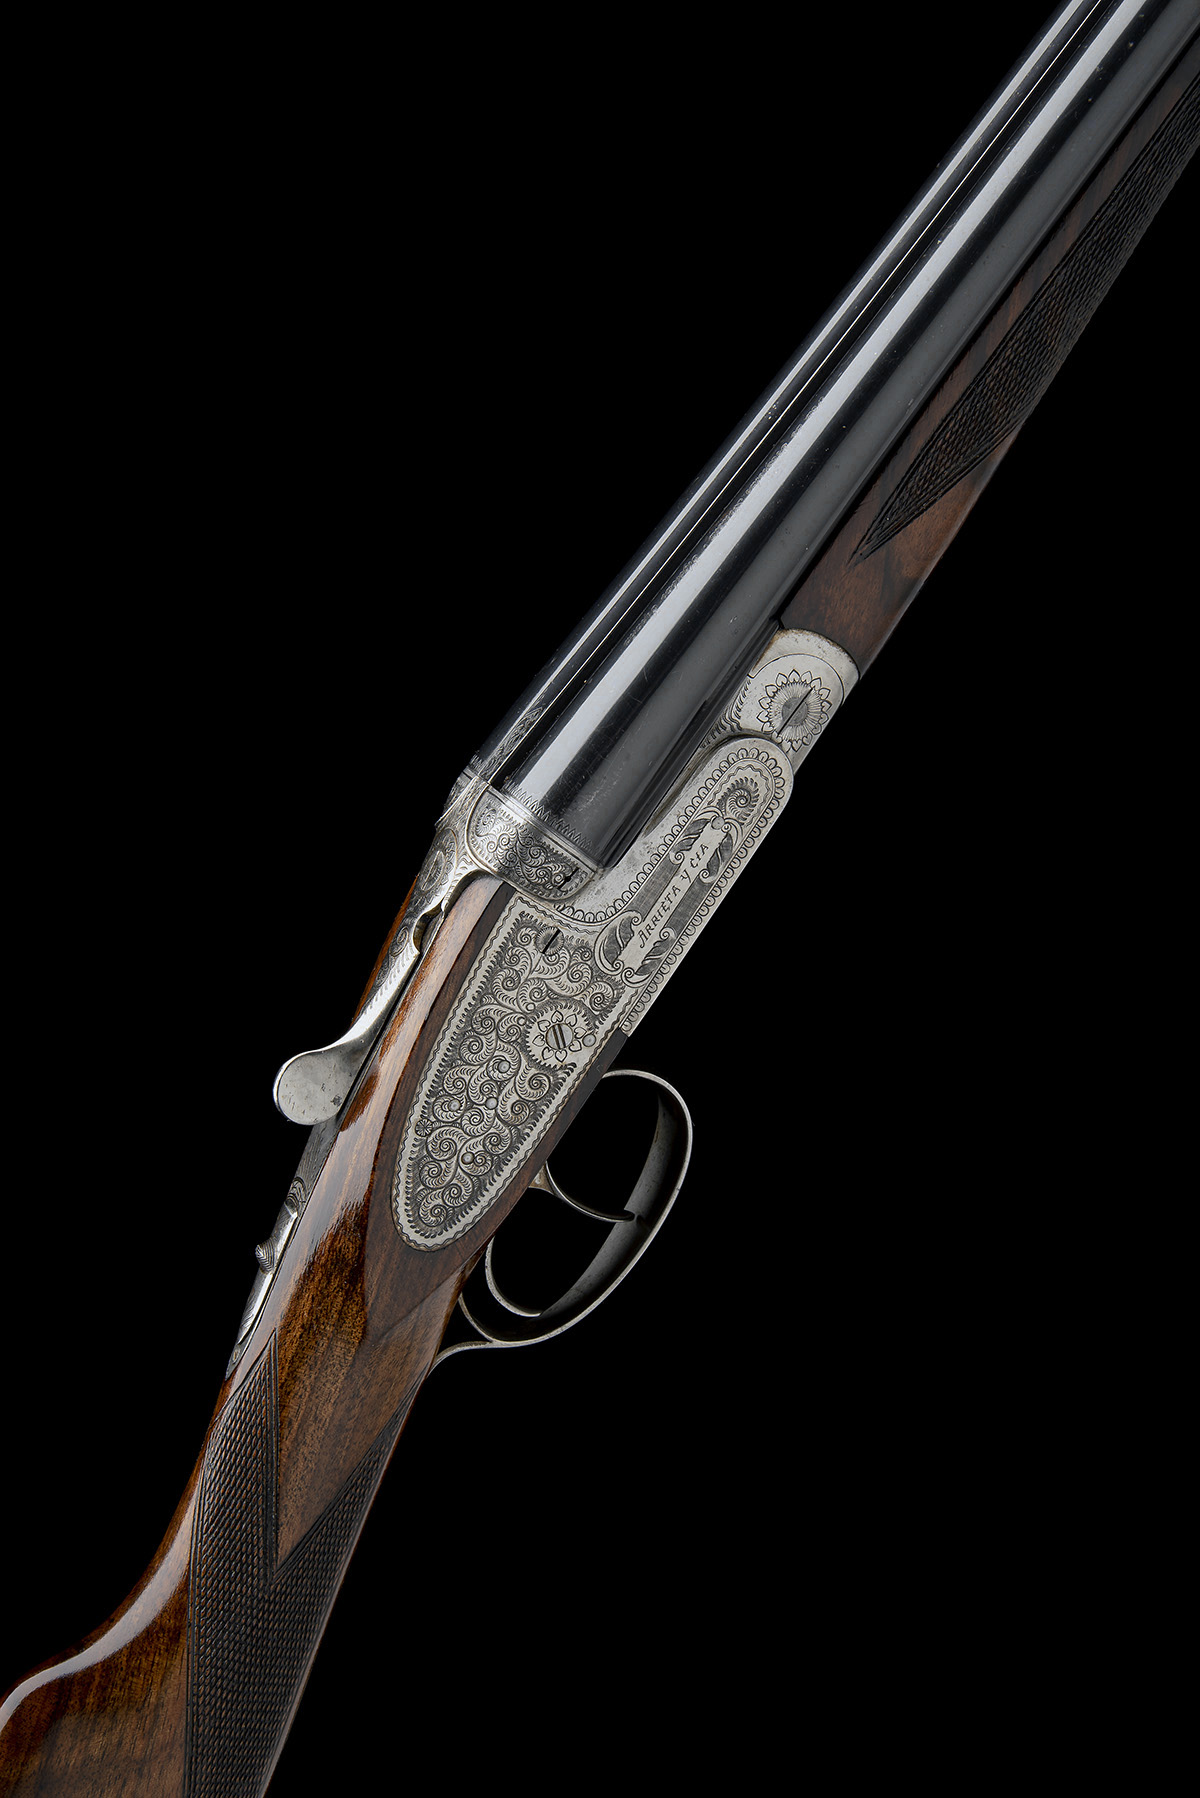 ARRIETA A 28-BORE 'MODEL 557' SIDELOCK EJECTOR, serial no. 16-03, for 2003, full Spanish code 57-